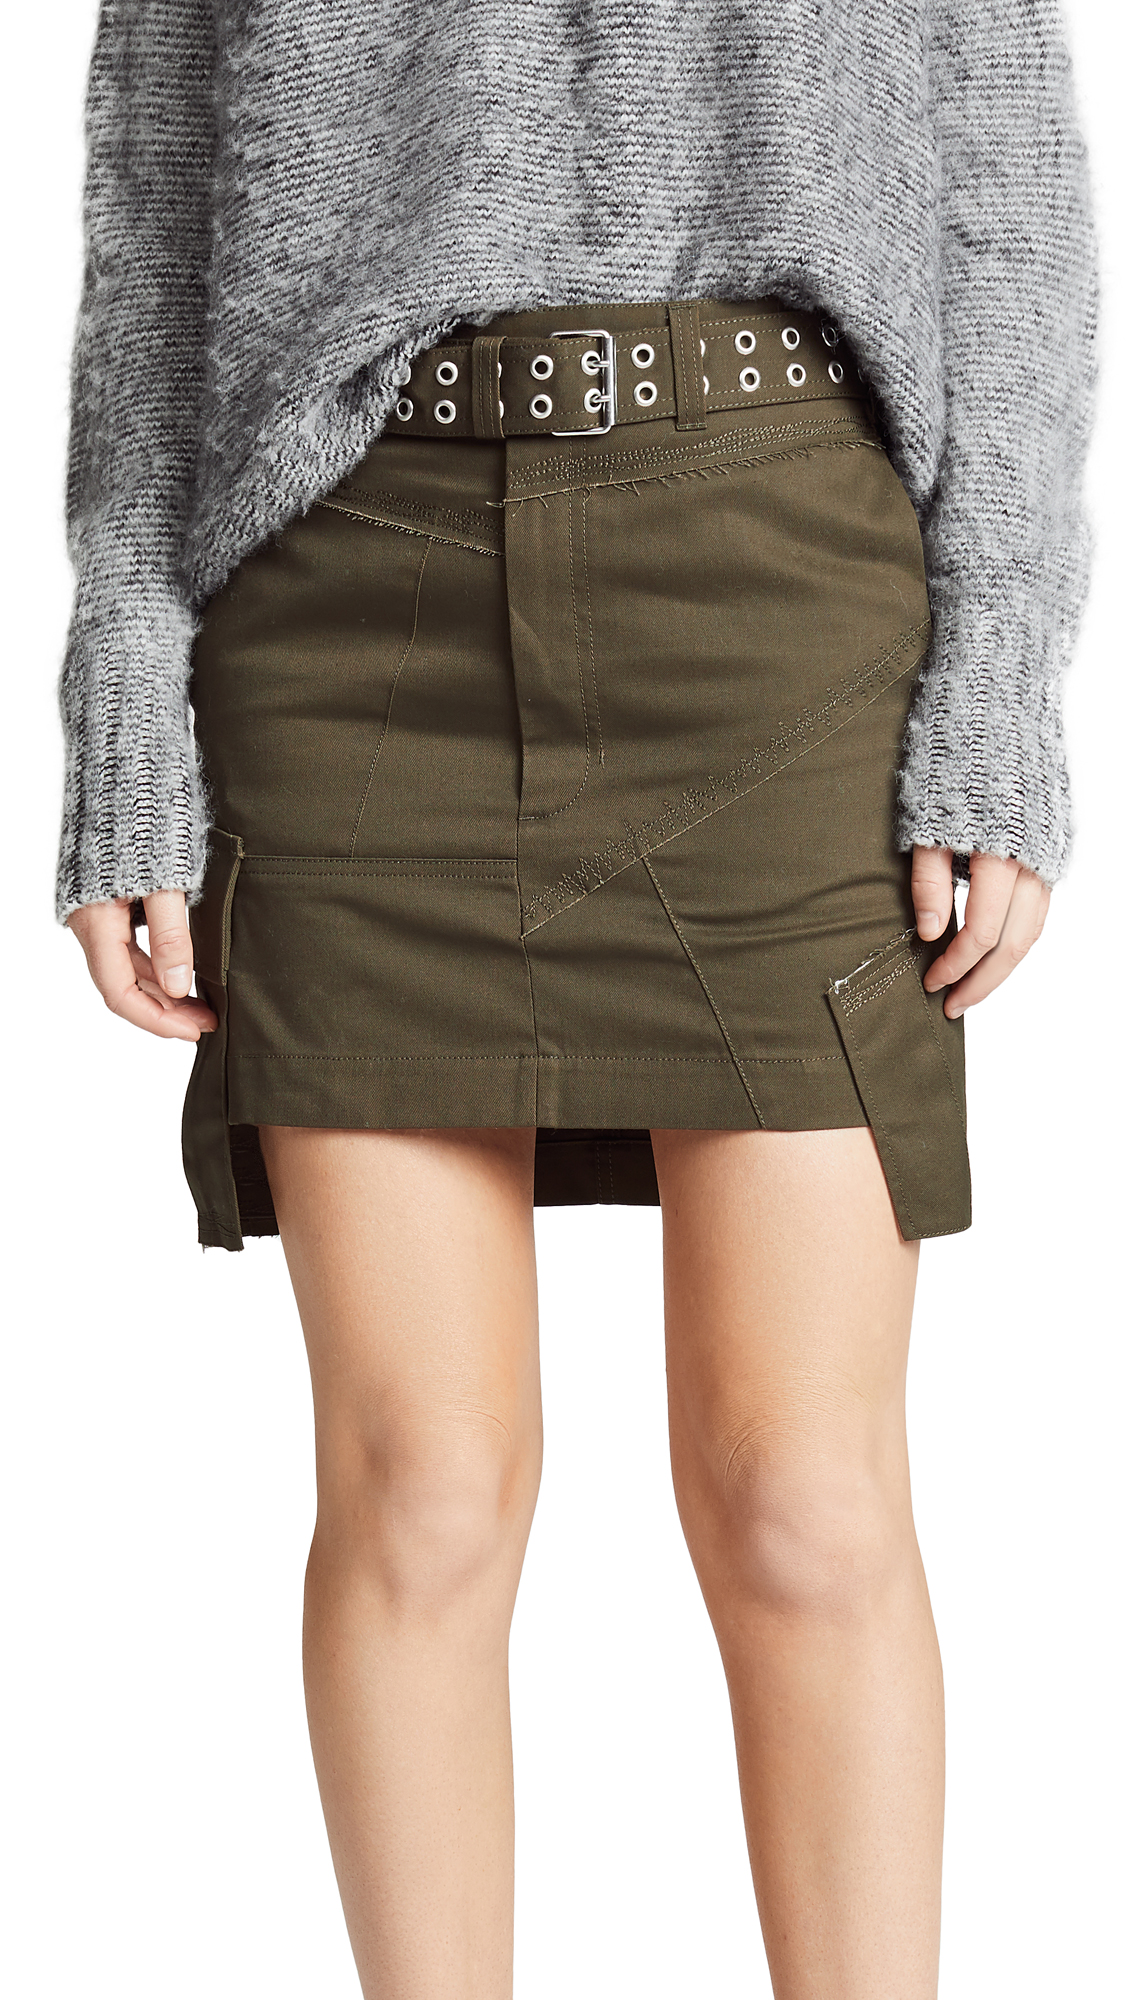 Helmut Lang Military Patch Skirt - Dark Peat